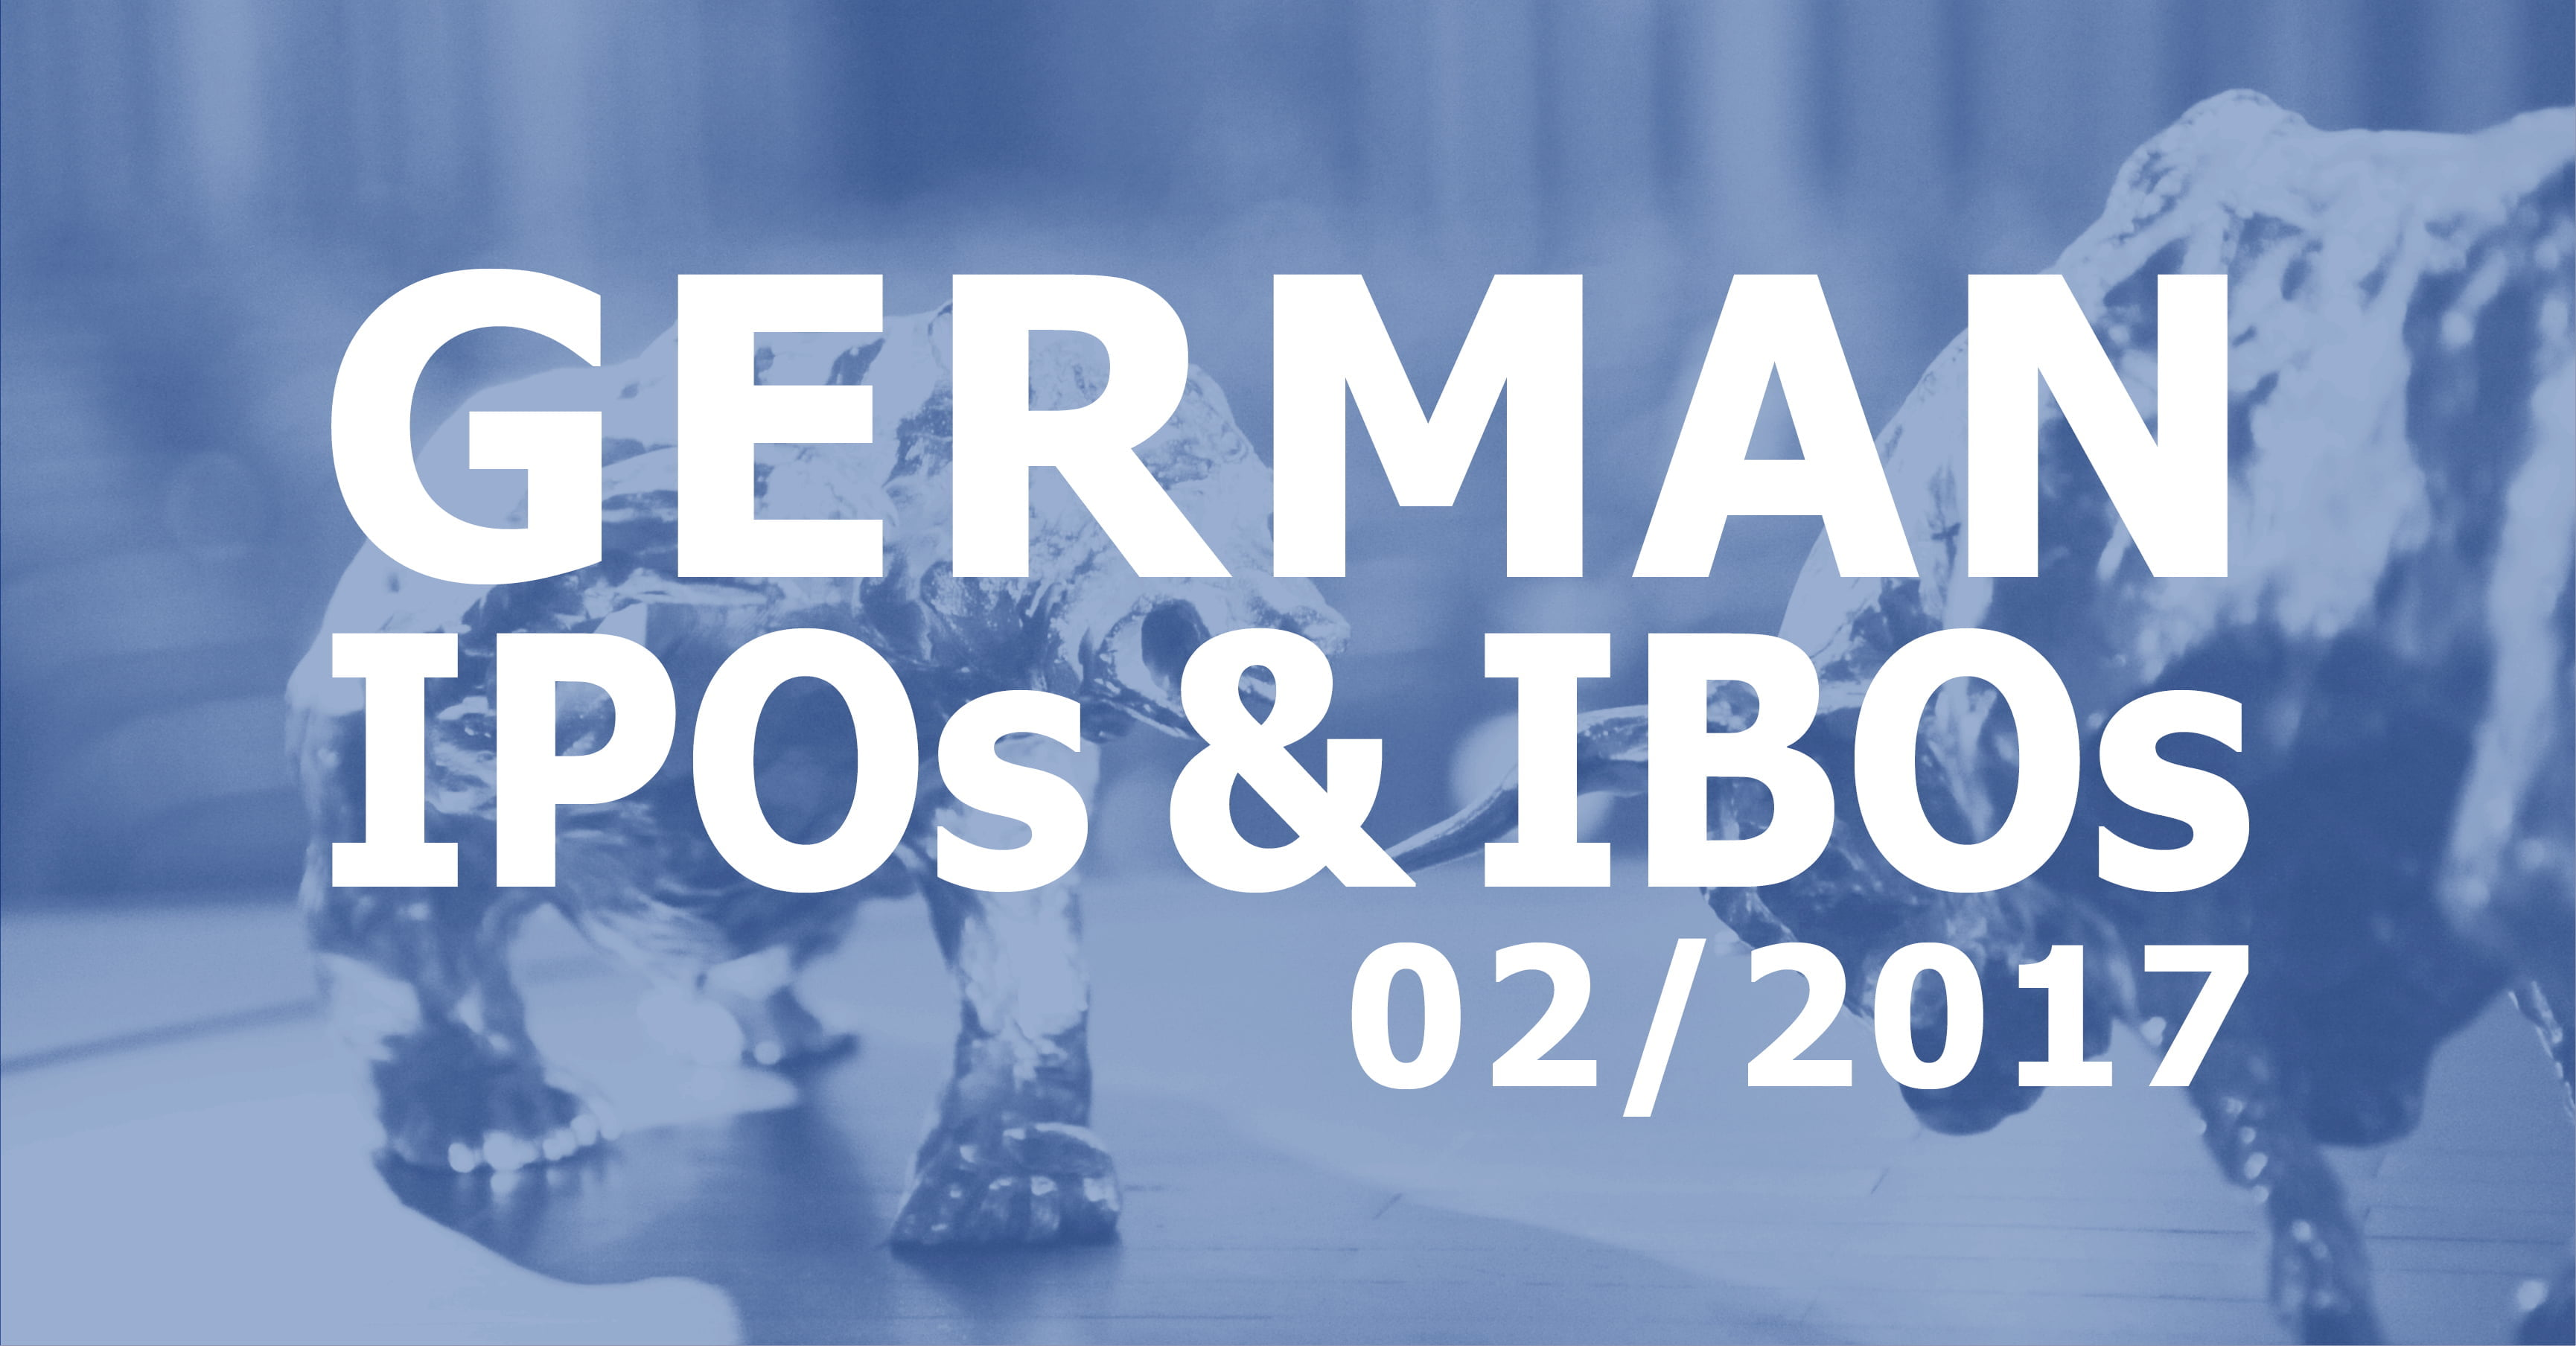 German IPOs and IBOs 02/2017